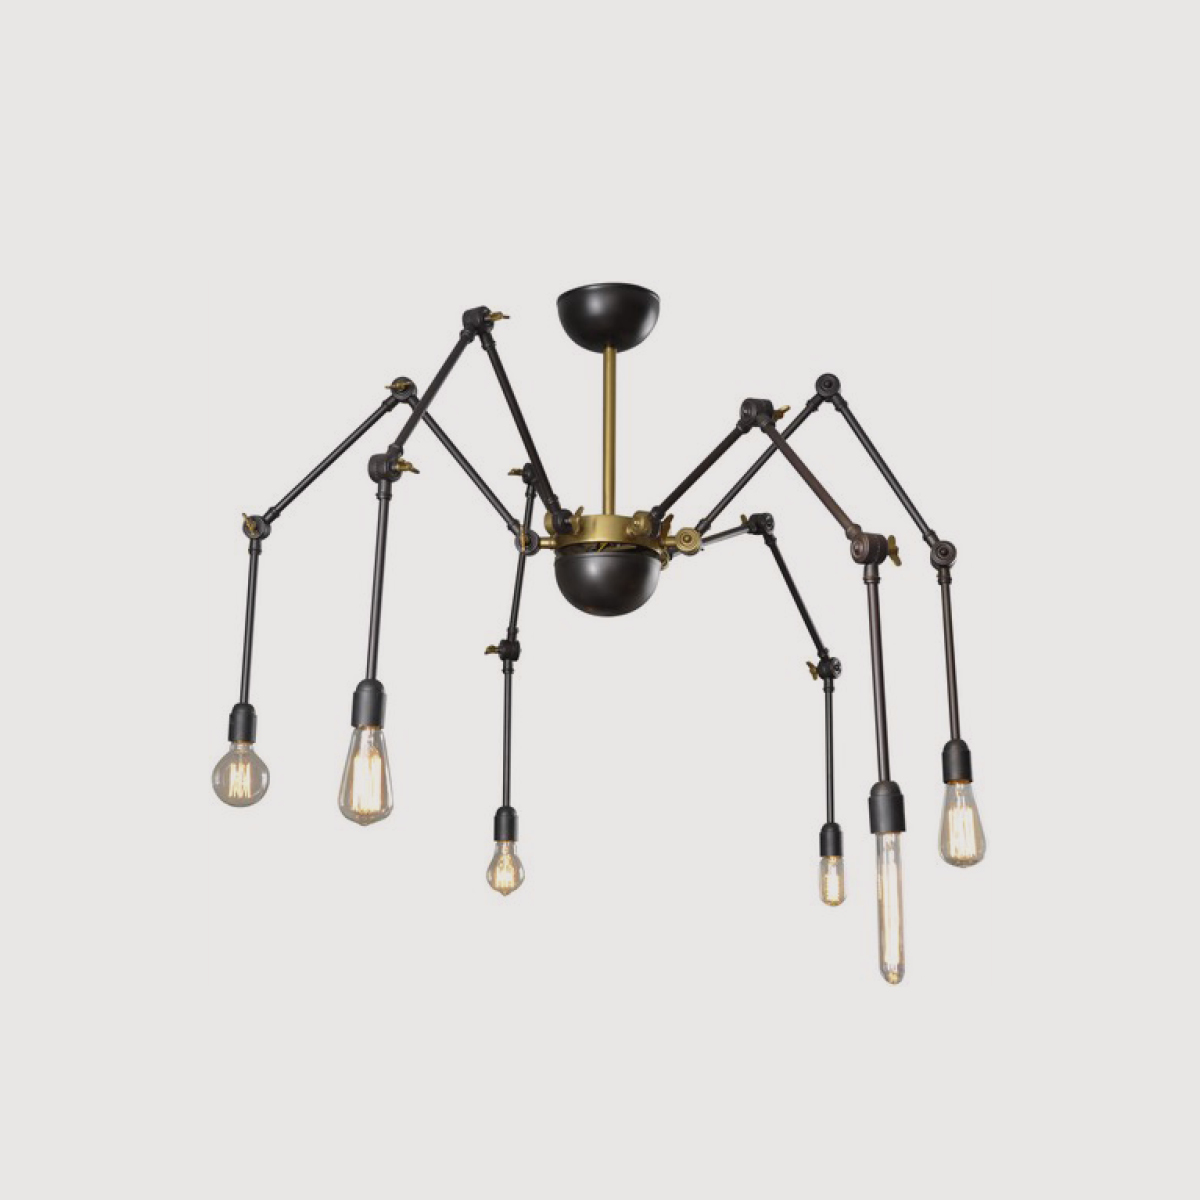 Spider Arm Industrial Chandelier